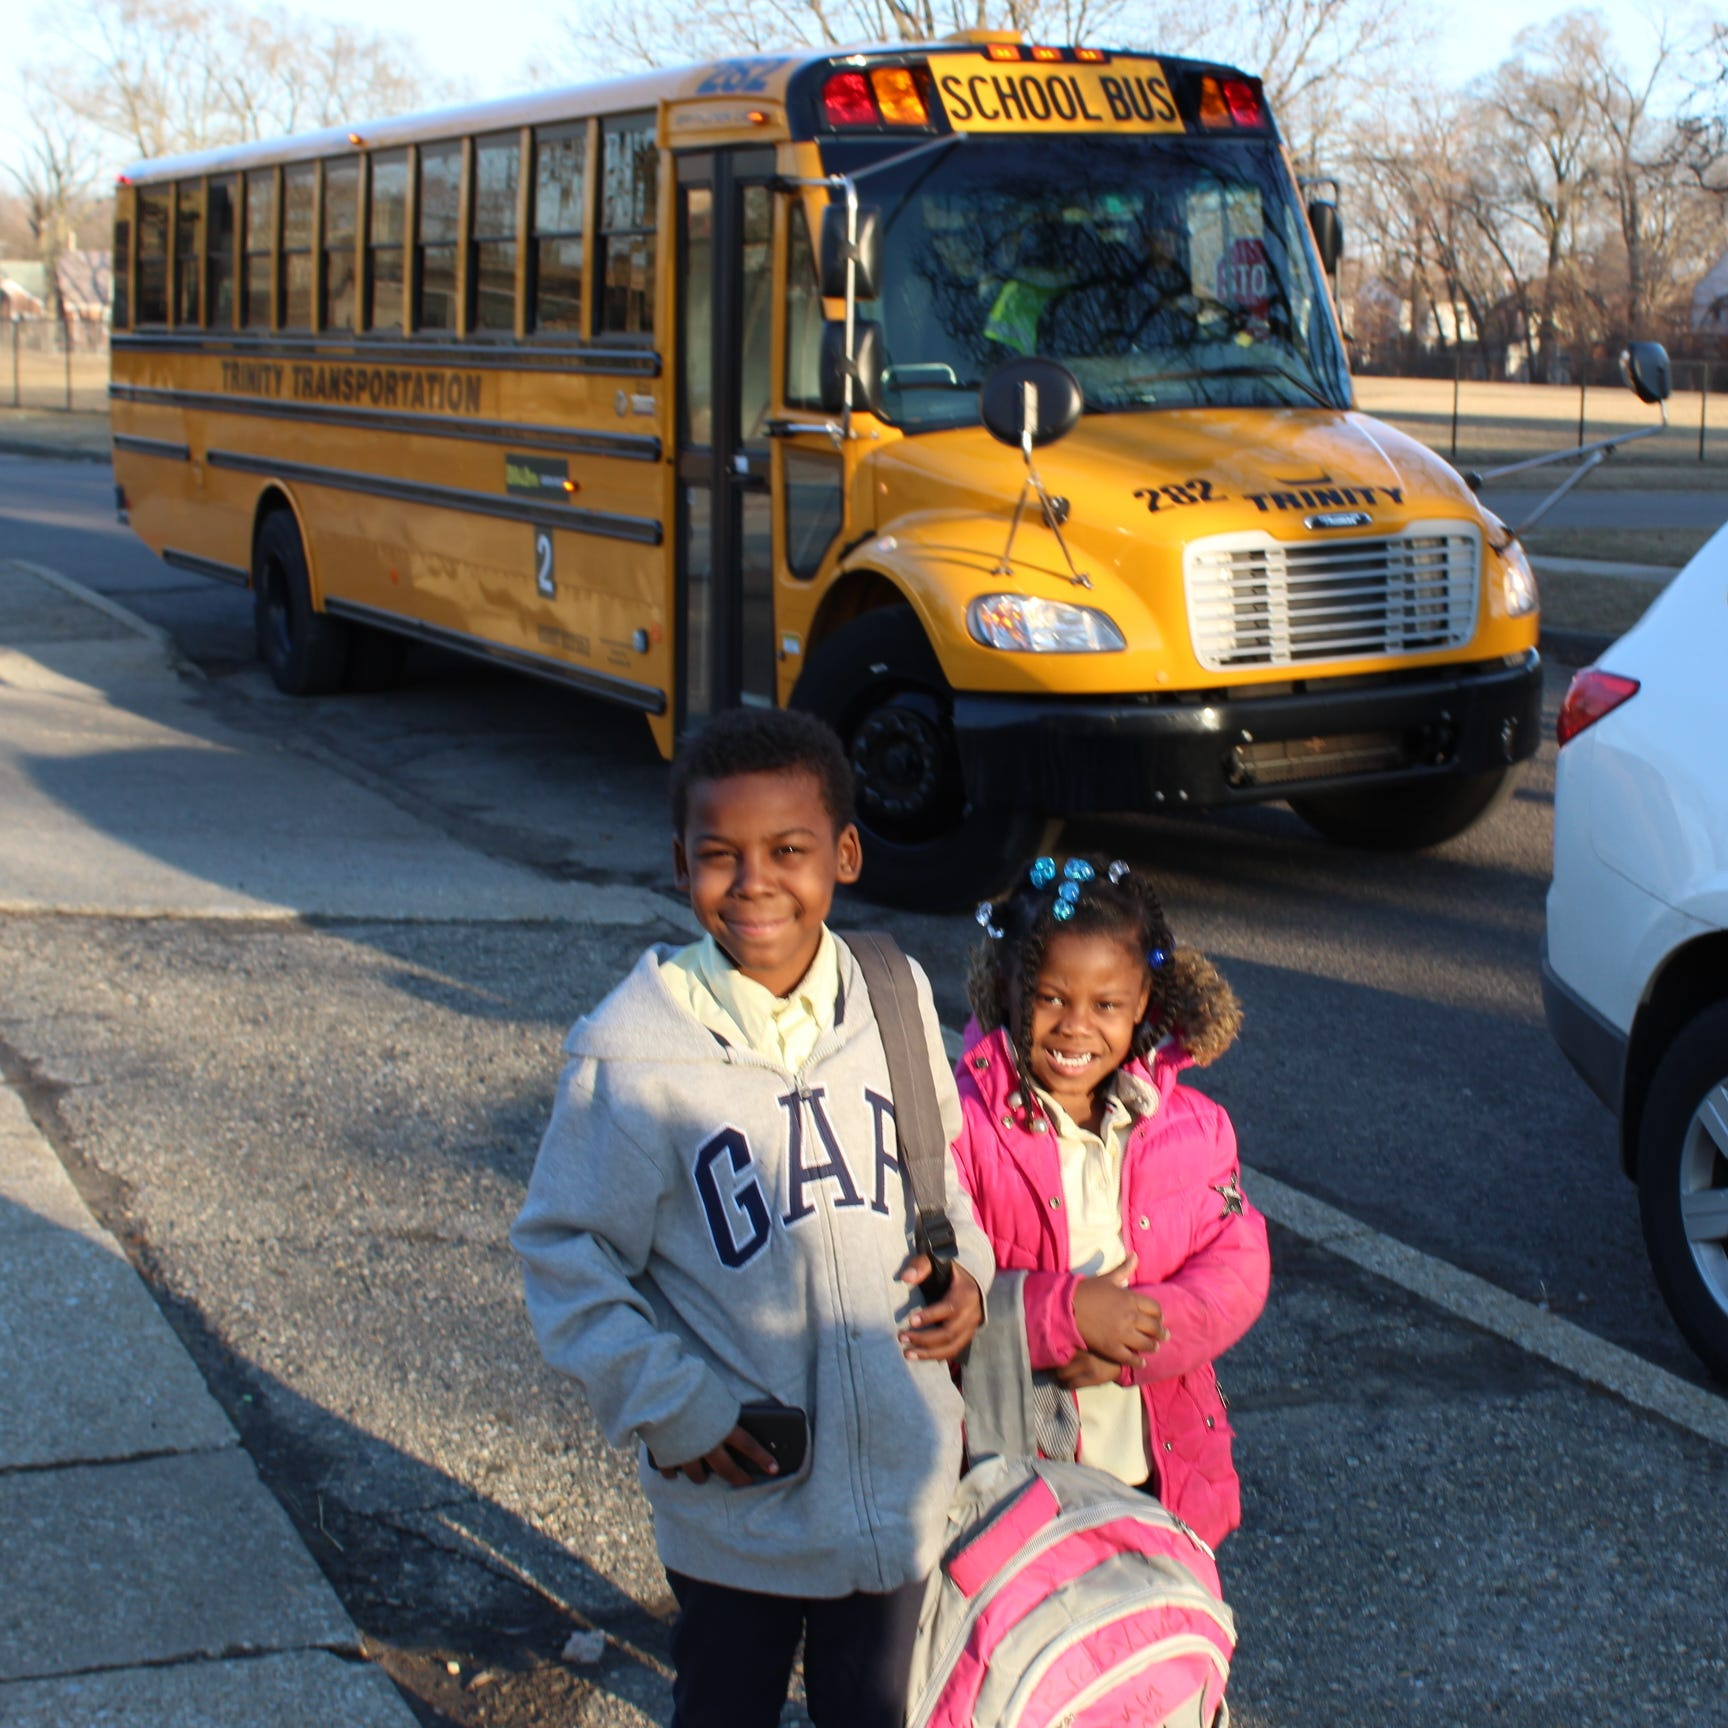 Duggan launched a bus route to draw students back to Detroit schools. Is it working?